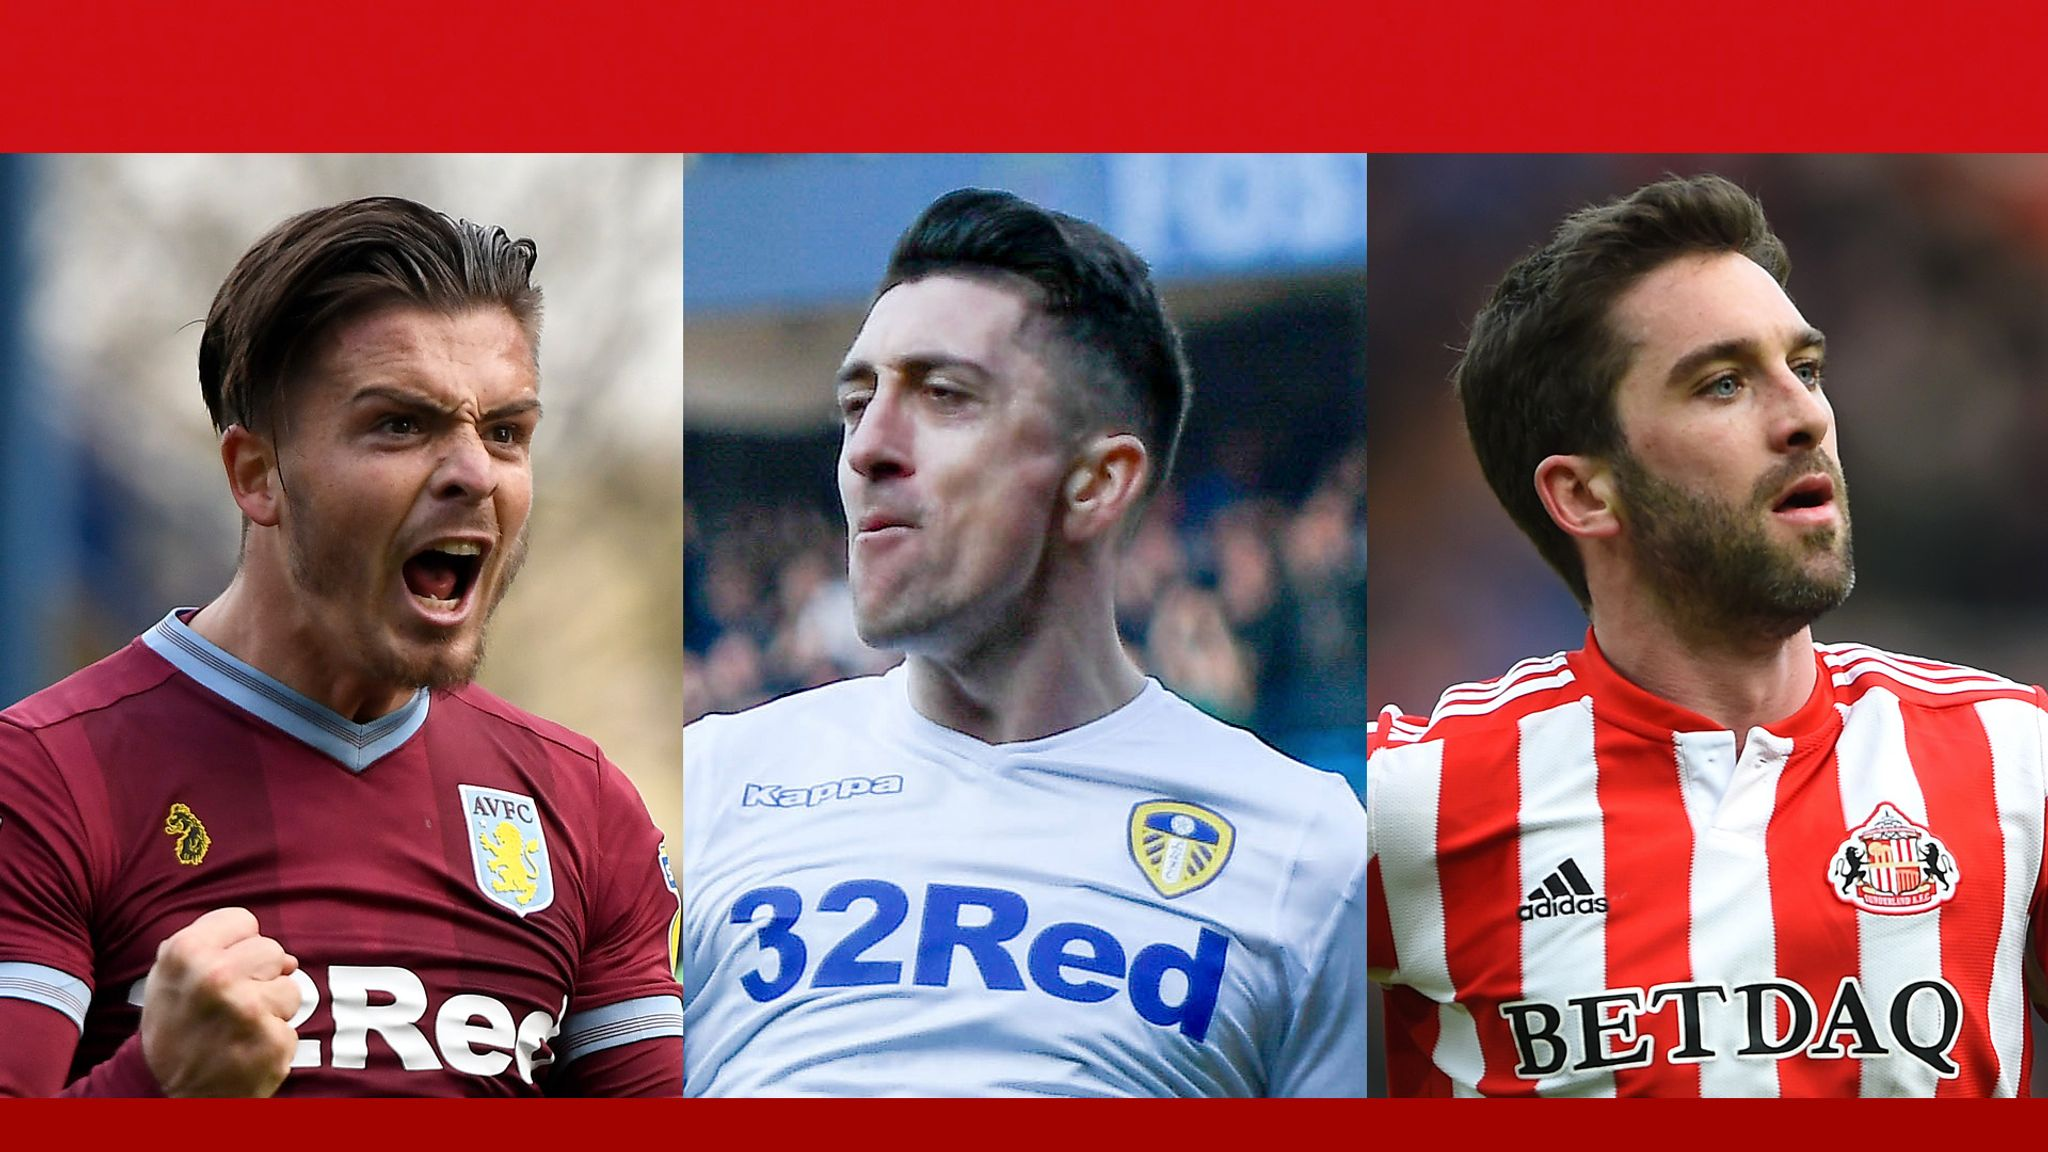 Watch and follow the Championship, League One and League Two